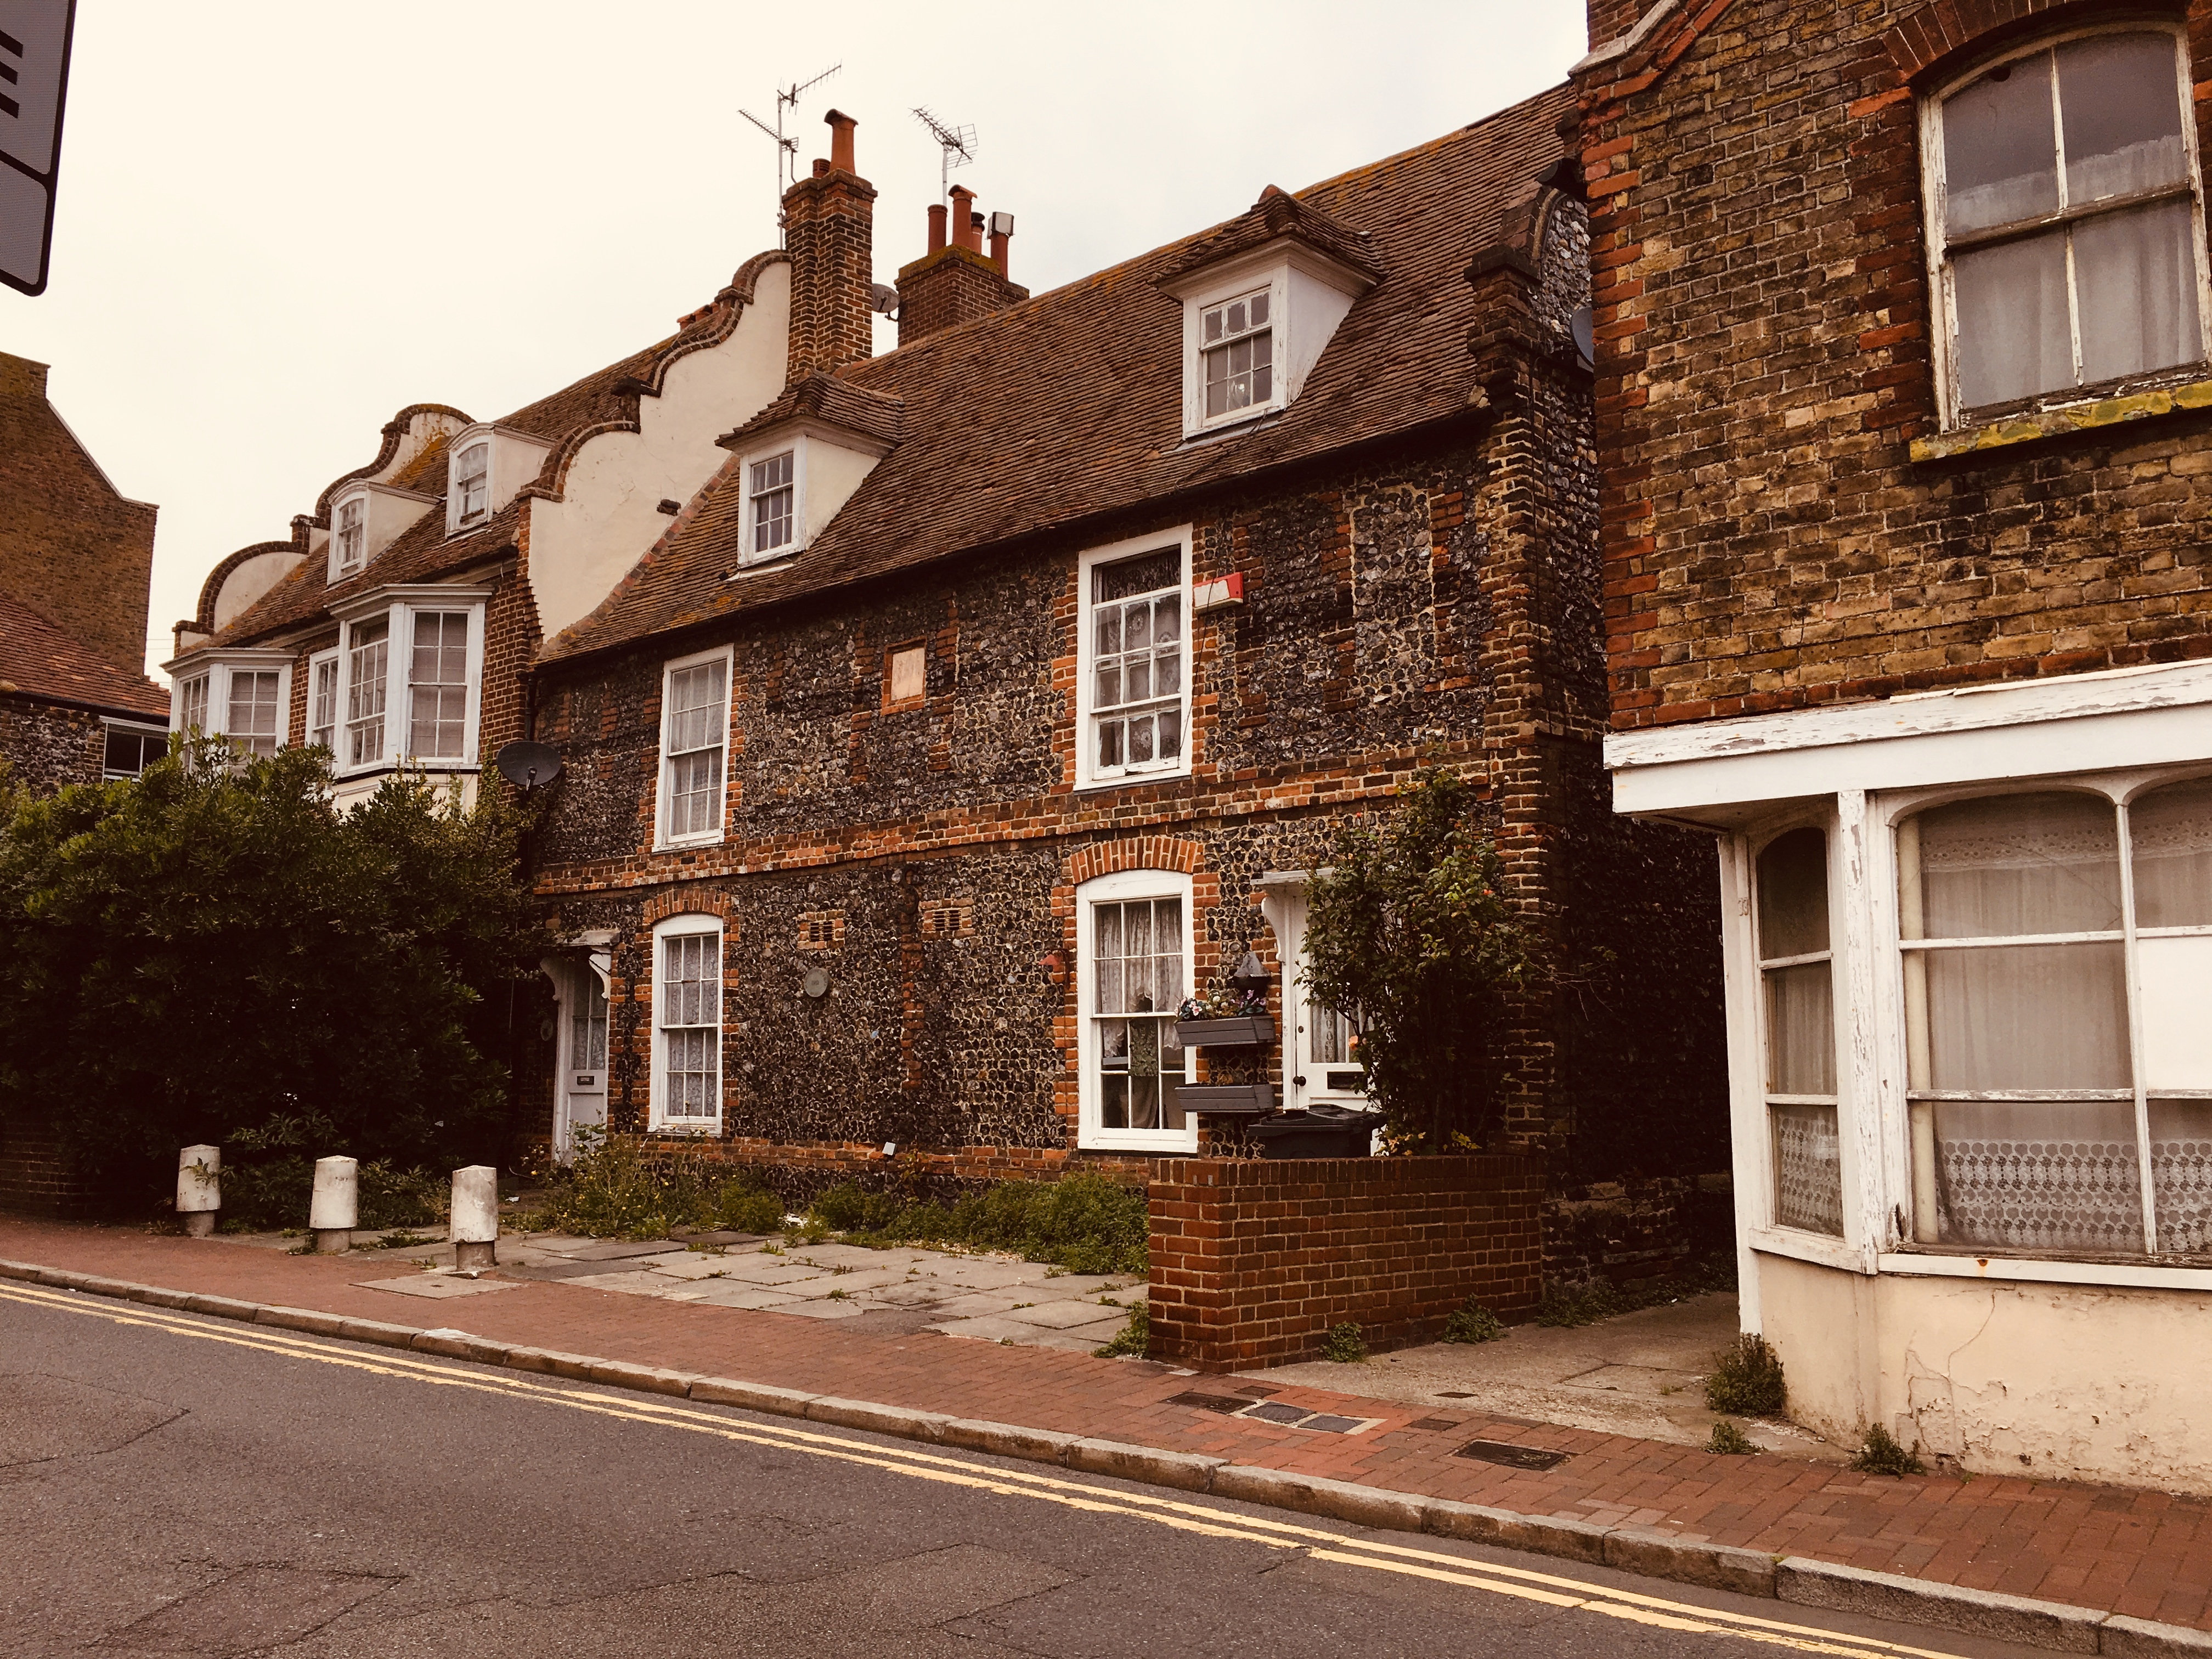 House in Margate